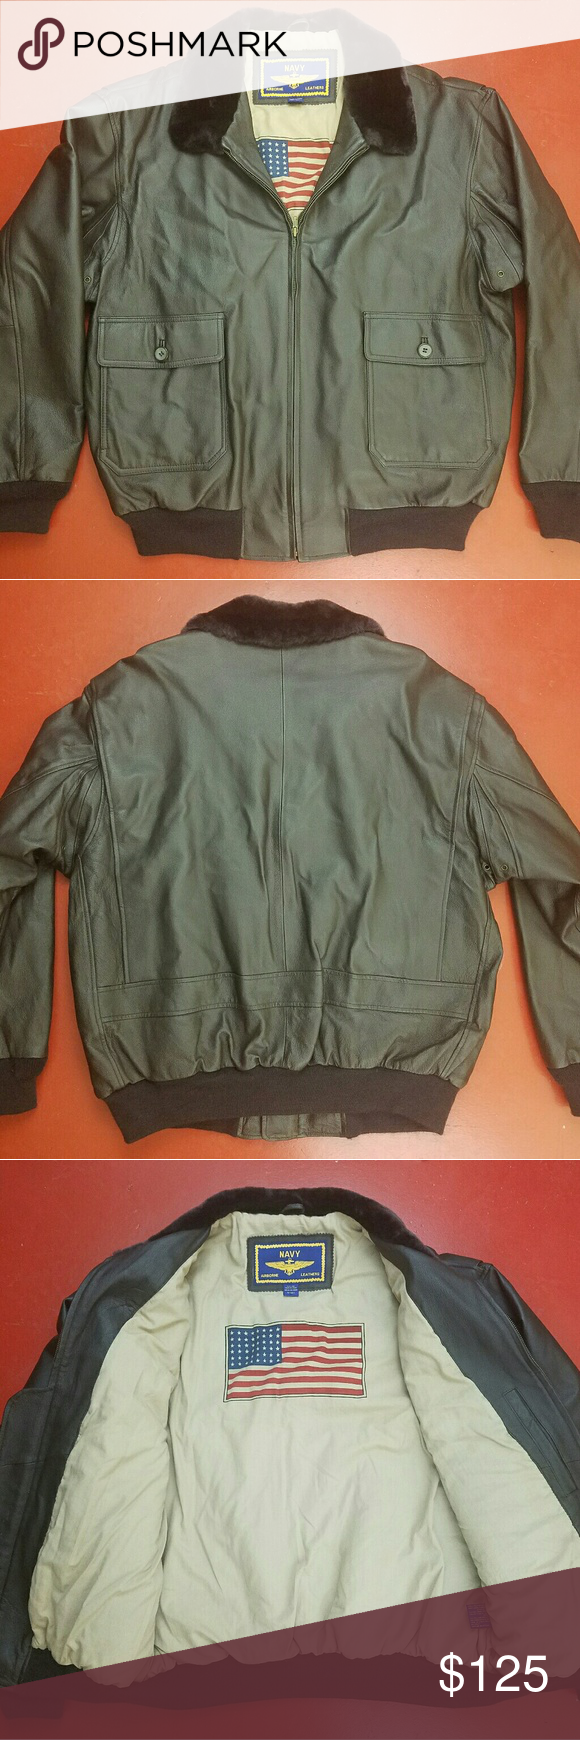 Navy Airborne Leathers Leather Bomber Jacket Excellent Condition No Notable Flaws Navy Airborne Leathers J Bomber Jacket Leather Bomber Jacket Leather Bomber [ 1740 x 580 Pixel ]